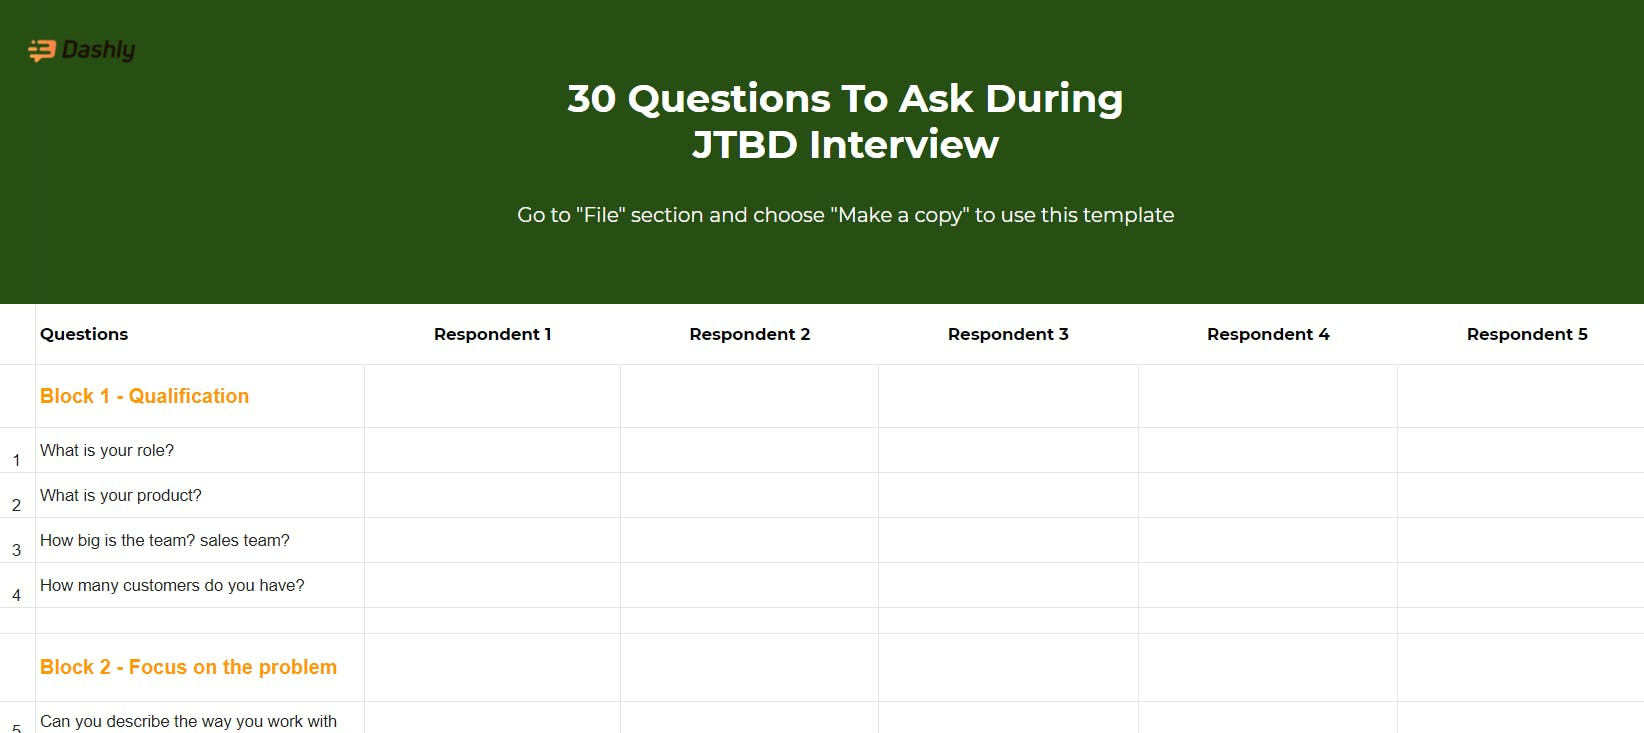 30 Questions To Ask During JTBD Interview